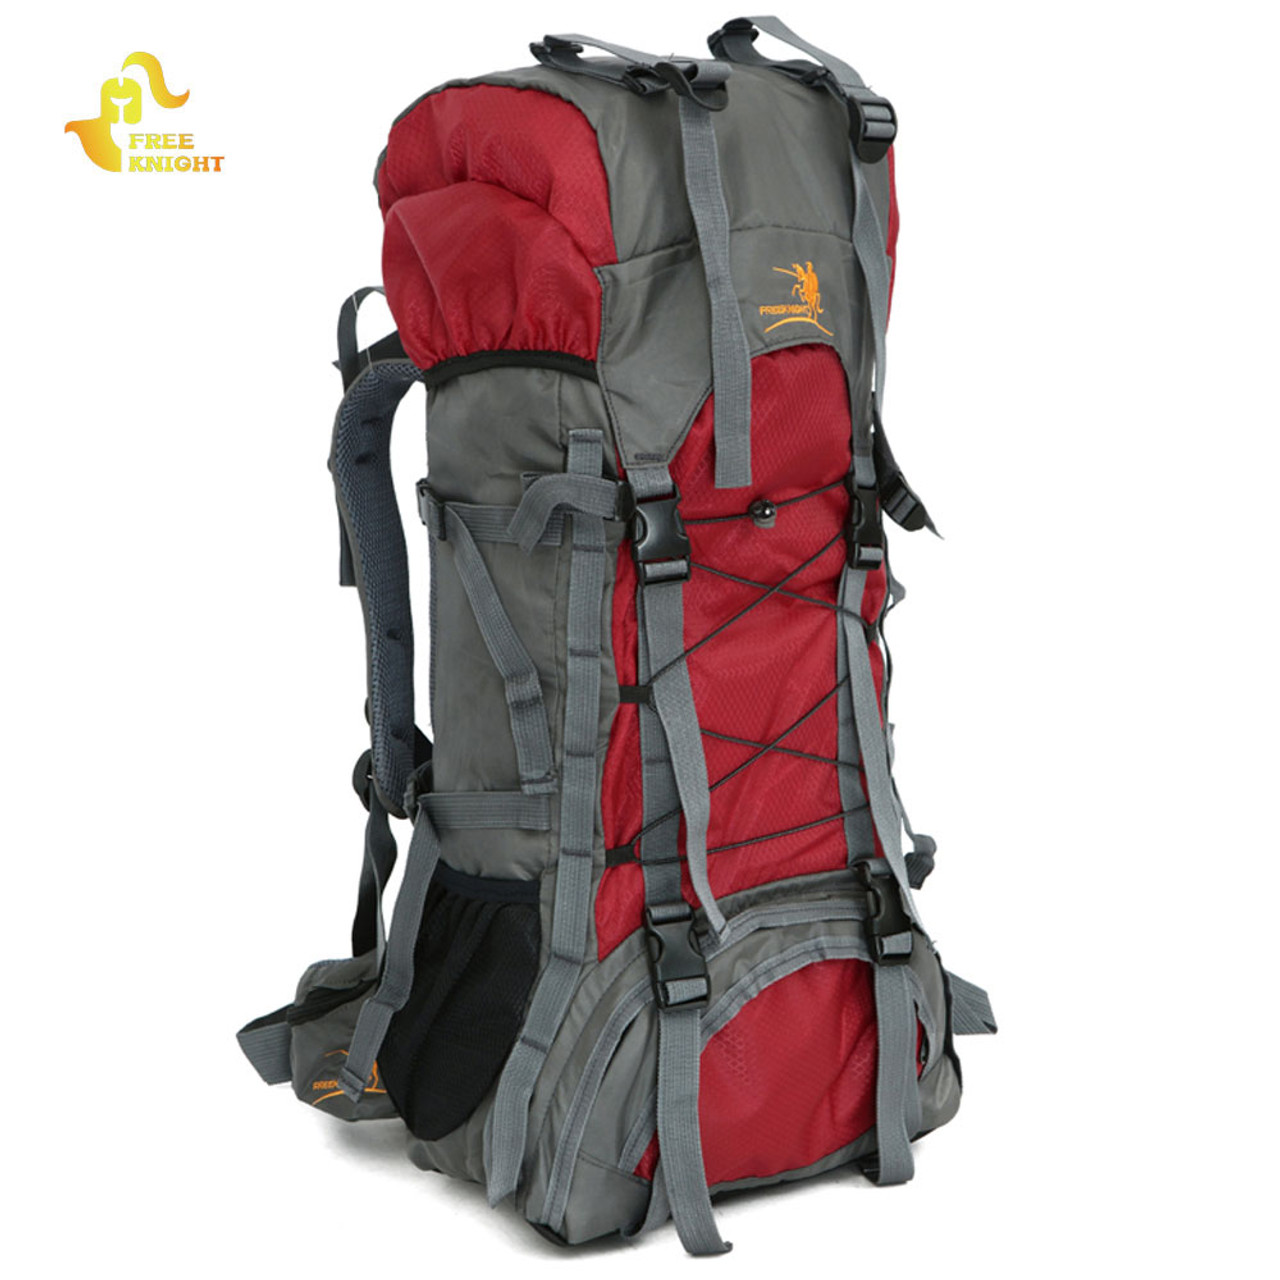 ... Free Knight Extra Large 60L Nylon Waterproof Mountaineering Backpack  Outdoor Sport Climbing Hiking Traveling Picnic Bag ... f1f9294b7b935